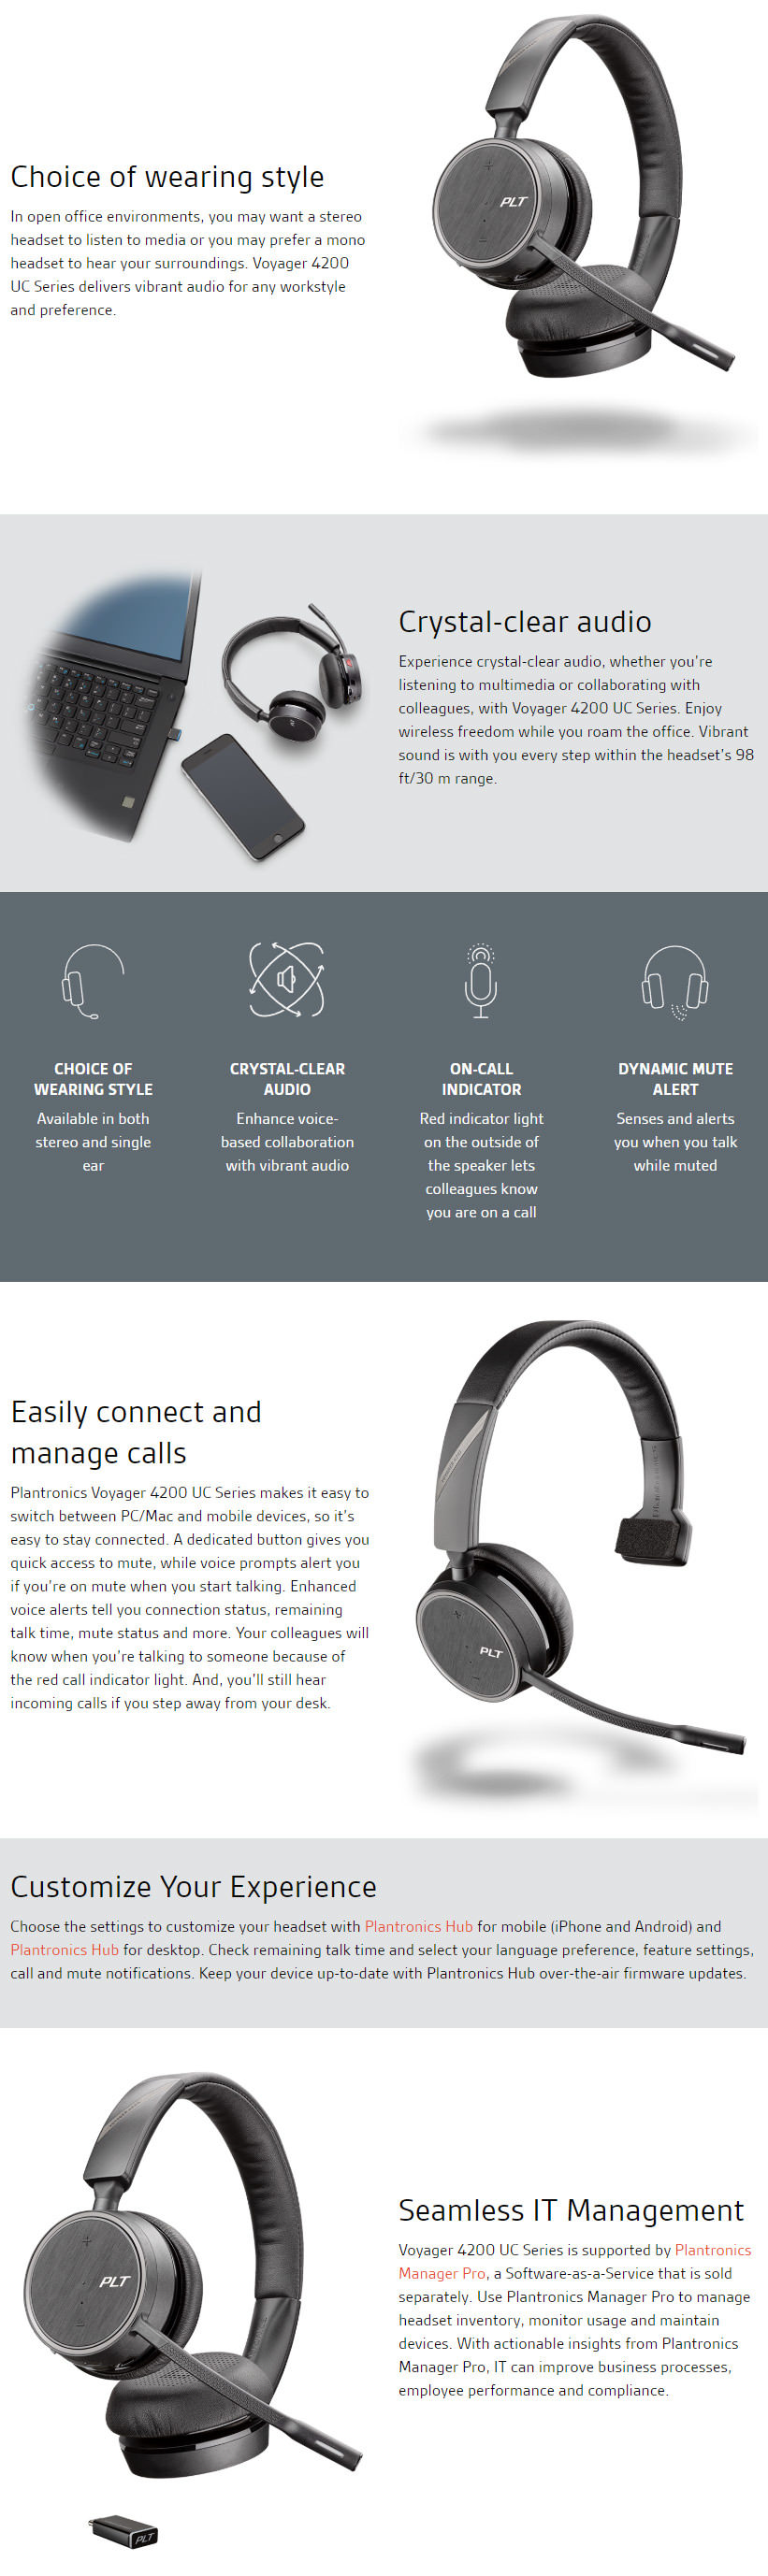 Details about PLANTRONICS VOYAGER 4220 UC MOBILE STEREO USB-A HEADSET  211996-01